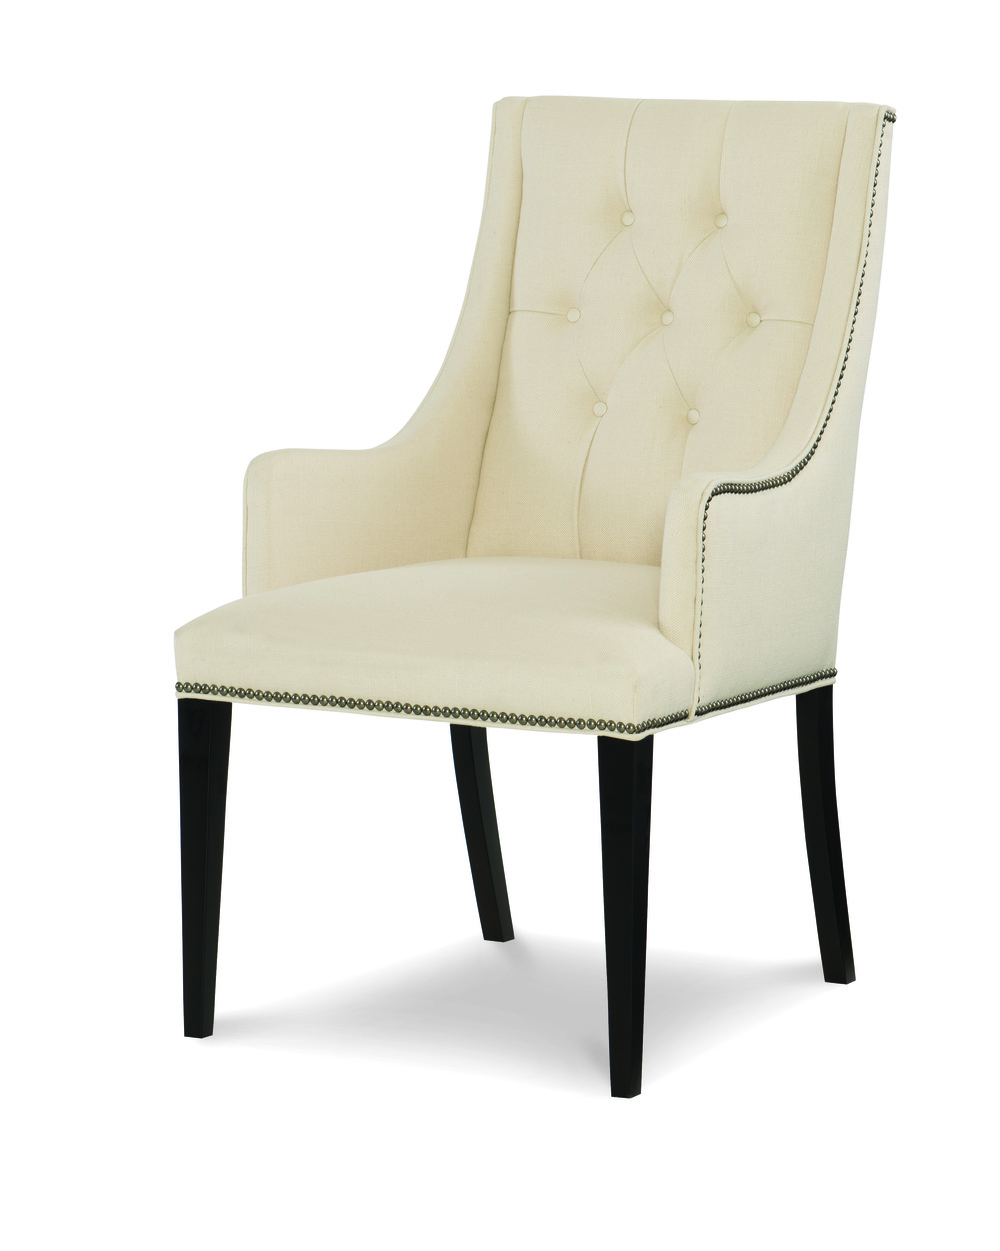 Century Furniture - Claire Tufted Arm Chair